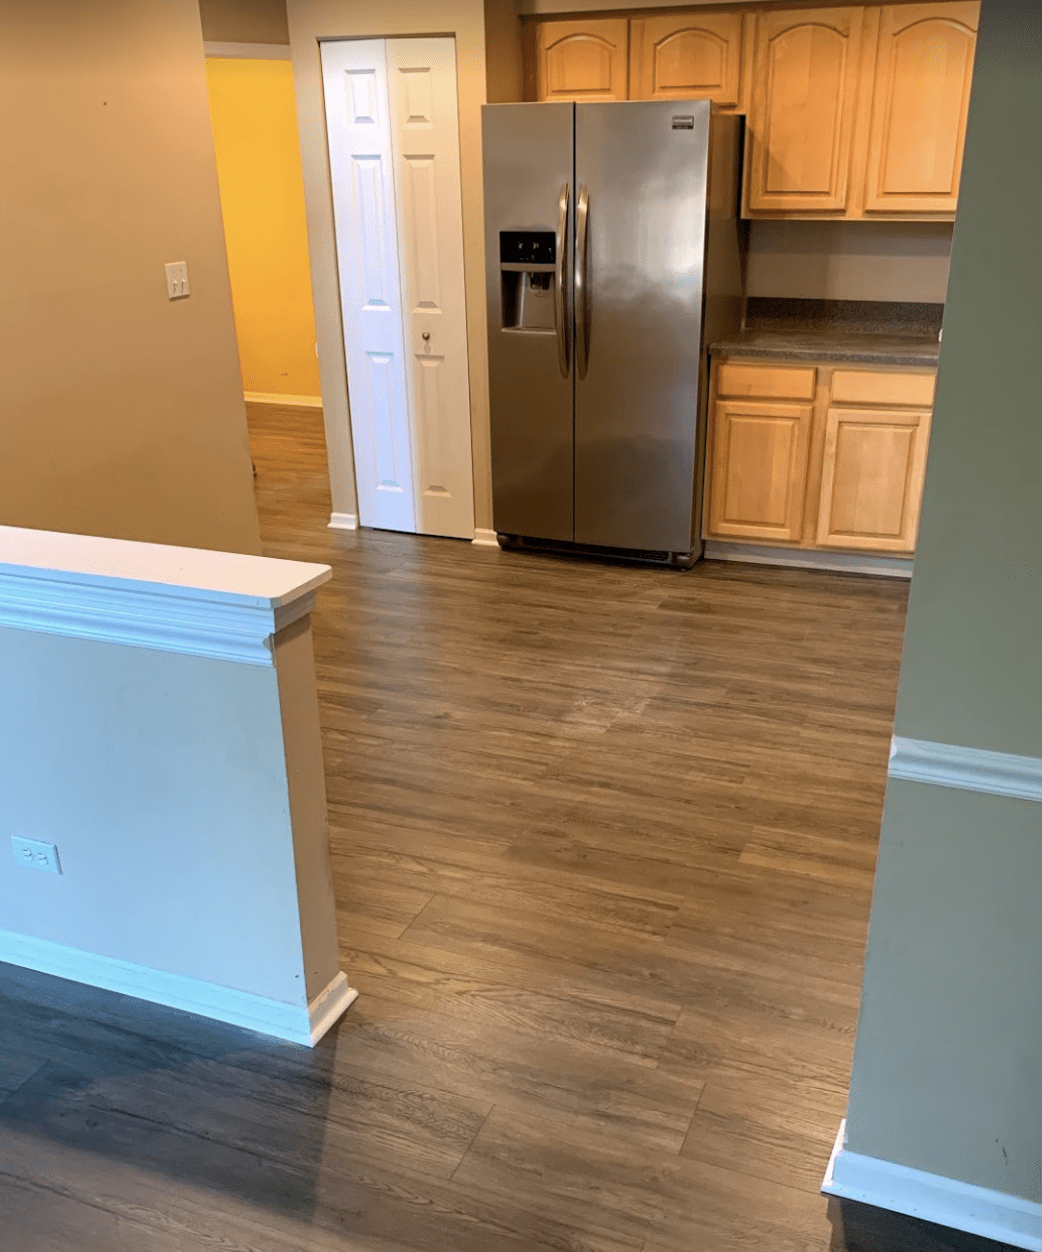 Wood look kitchen flooring in Mount Prospect, IL from Alpha Carpet & Flooring